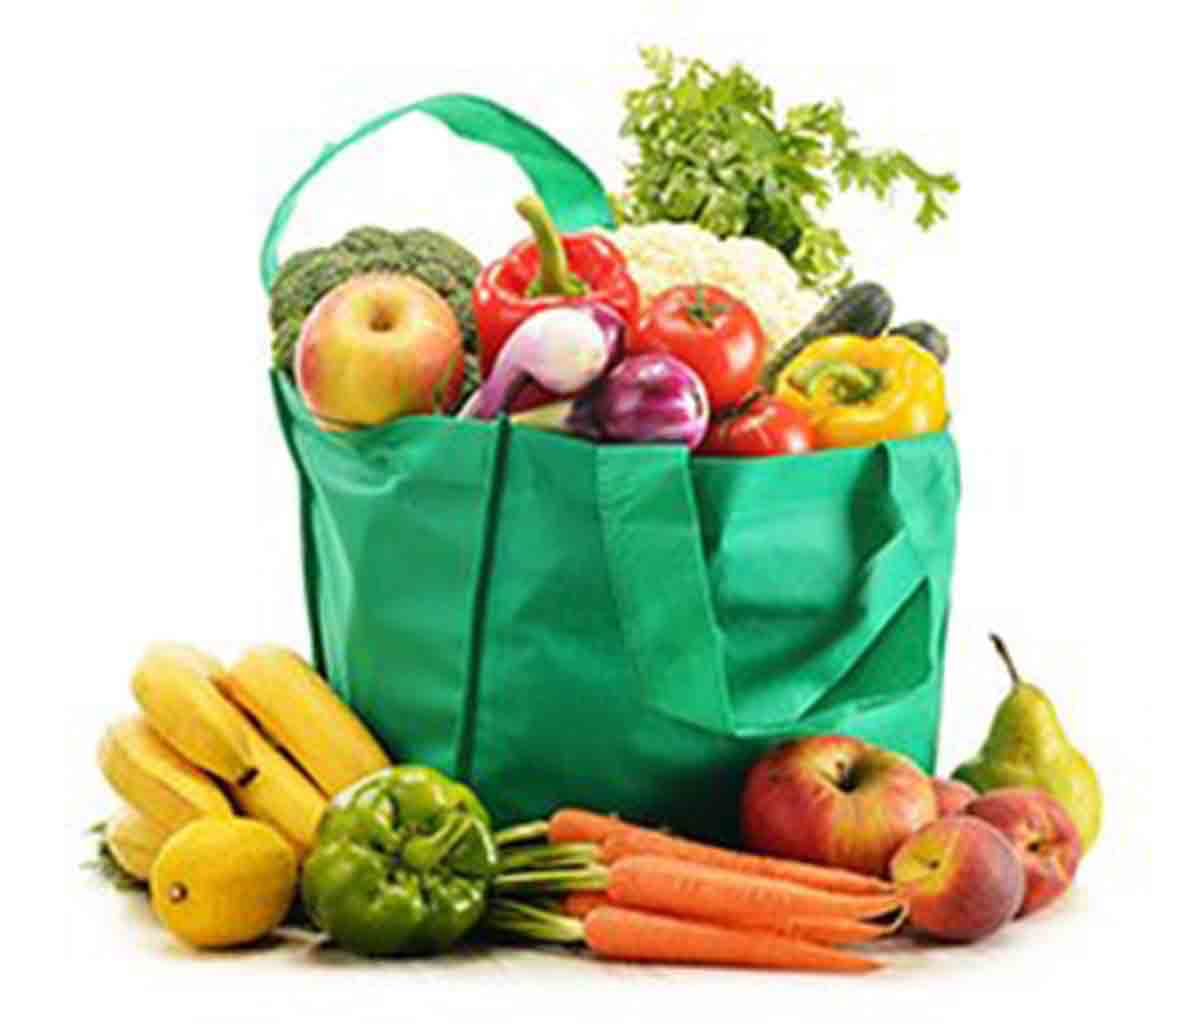 Fruit and veg in a bag